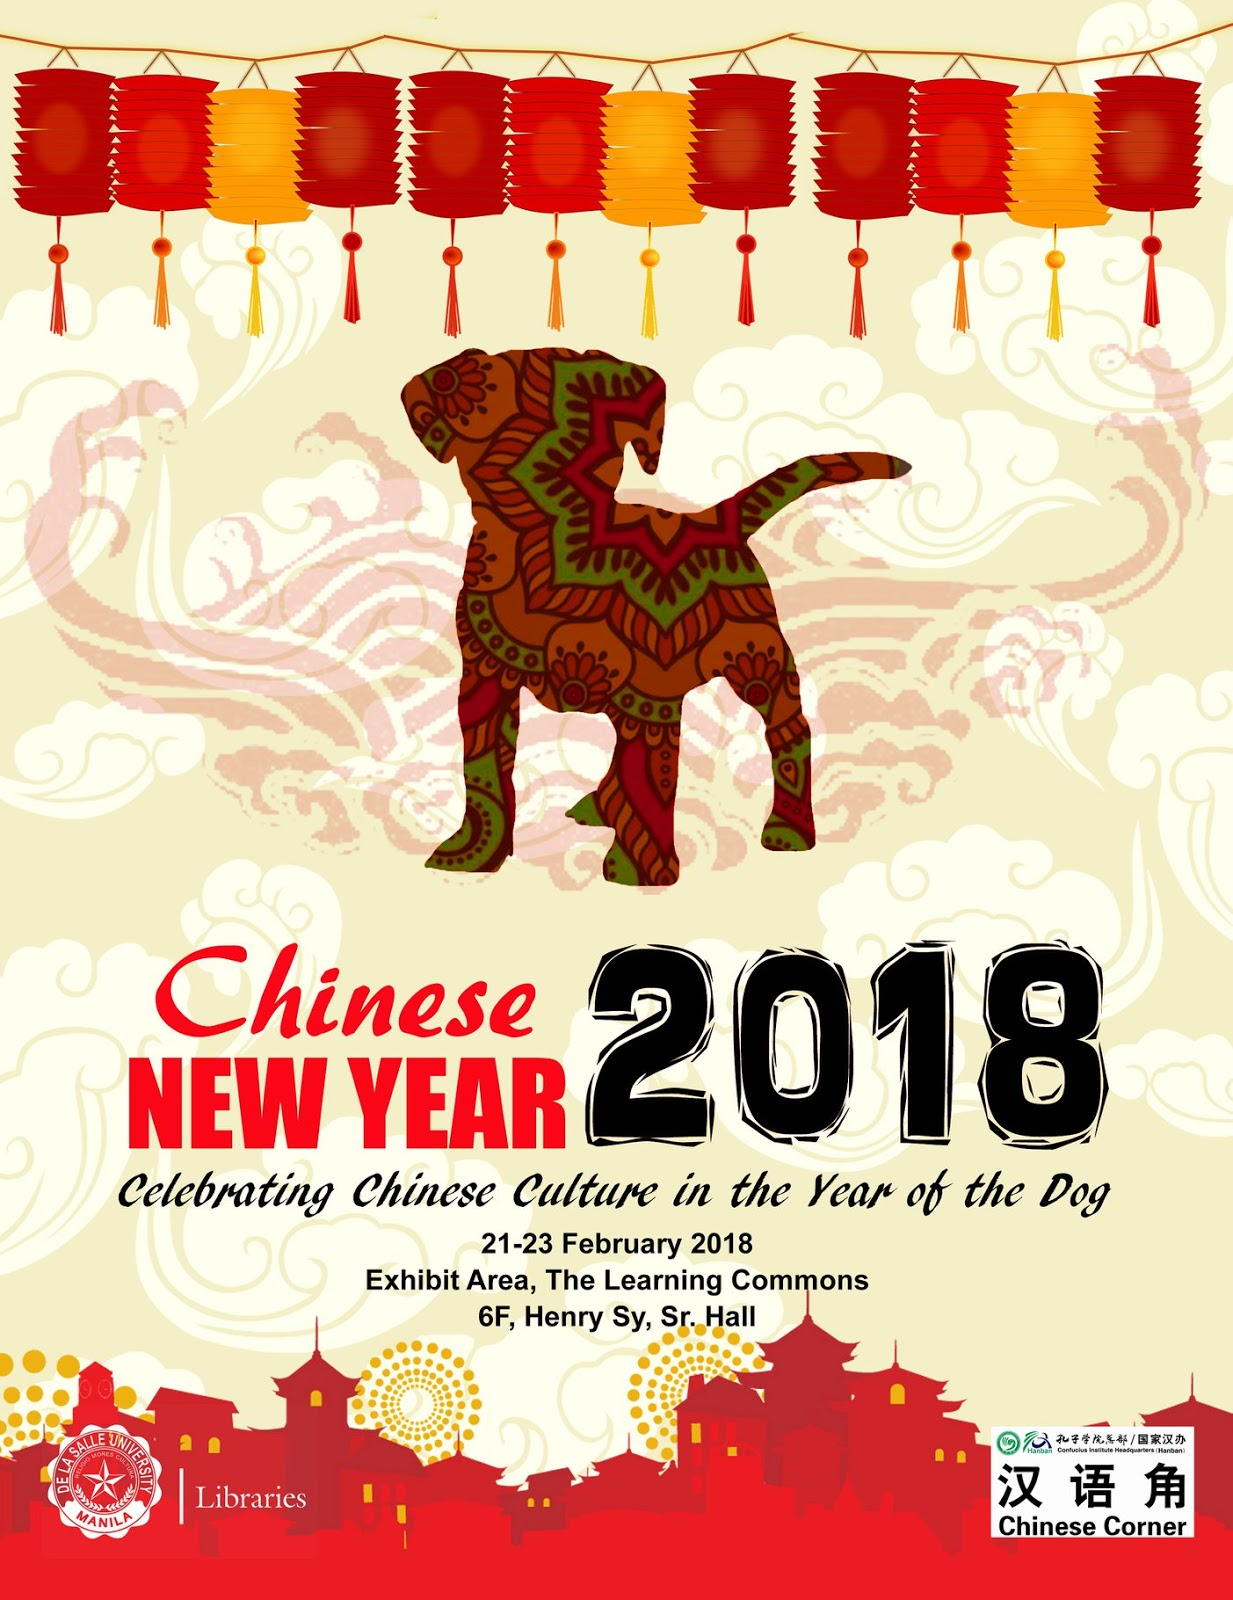 upcoming event chinese new year 2018 celebrating chinese culture in the year of the dog